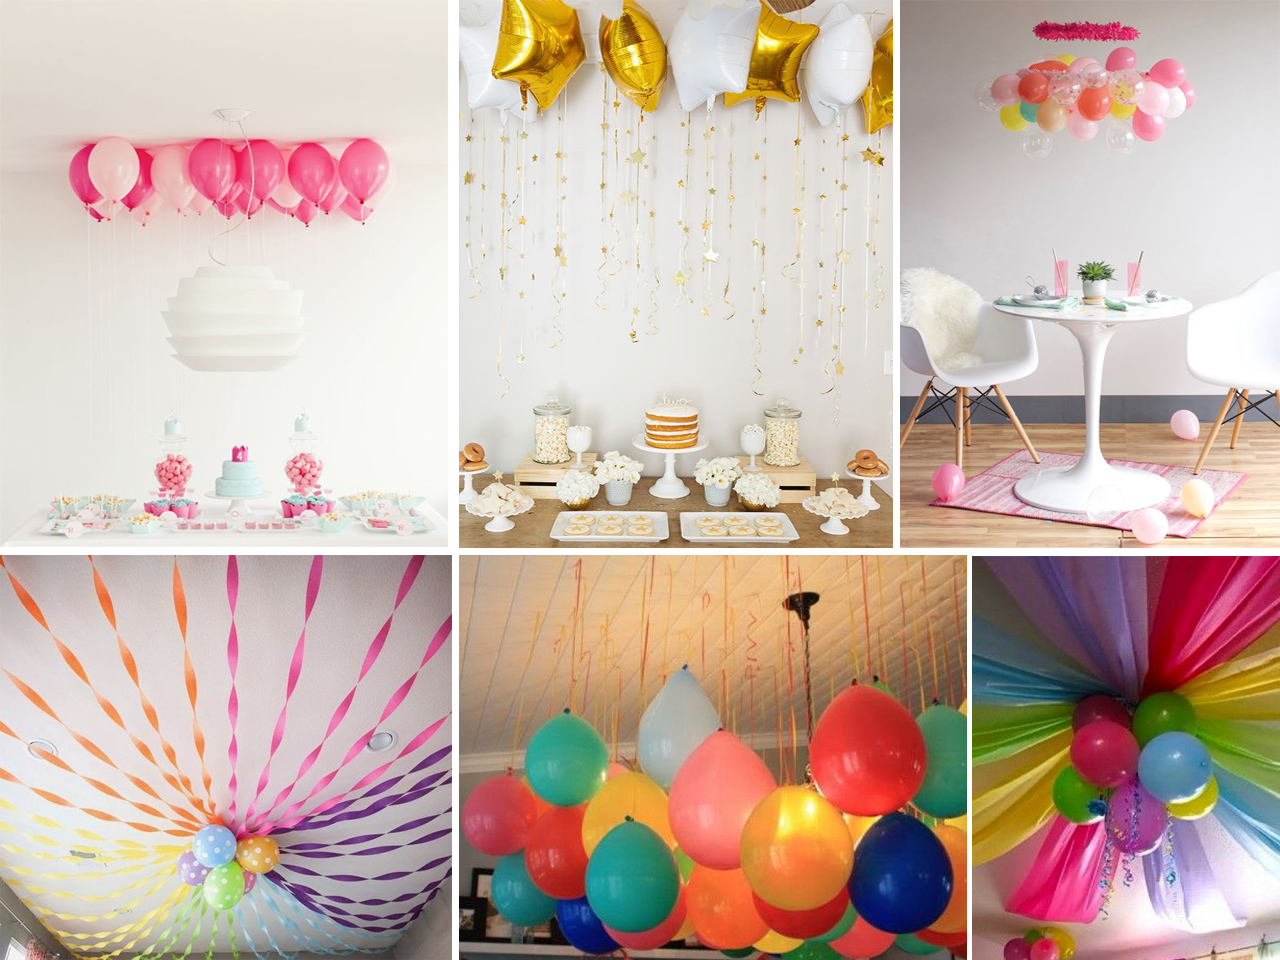 Descubre c mo decorar con globos con estas fant sticas ideas - Decoracion para fotos ...